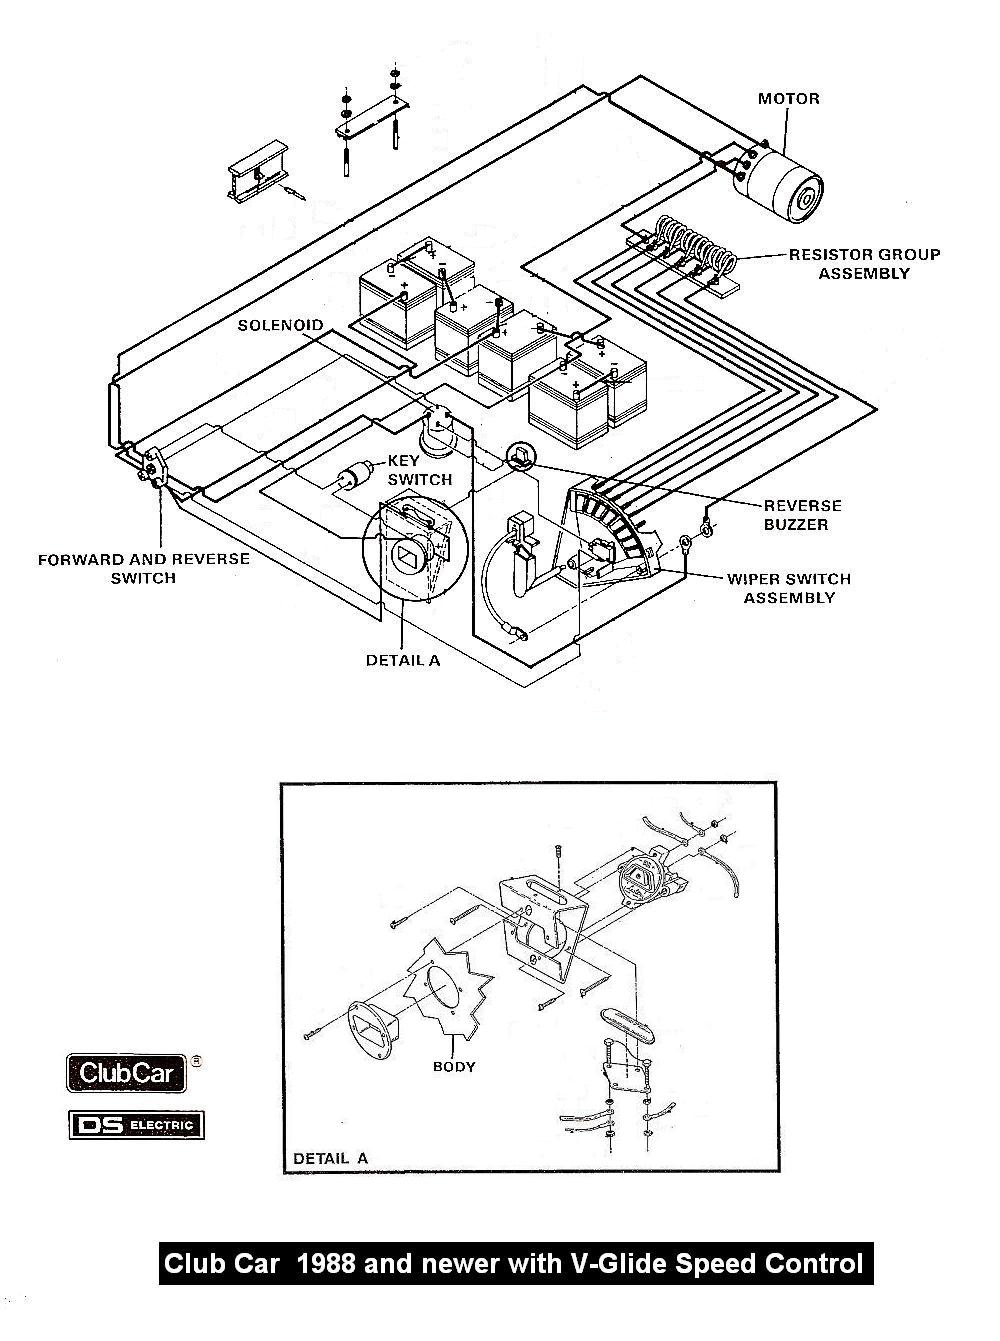 CC_88_newer_Wiper_wiring vintagegolfcartparts com 36 volt club car golf cart wiring diagram at crackthecode.co